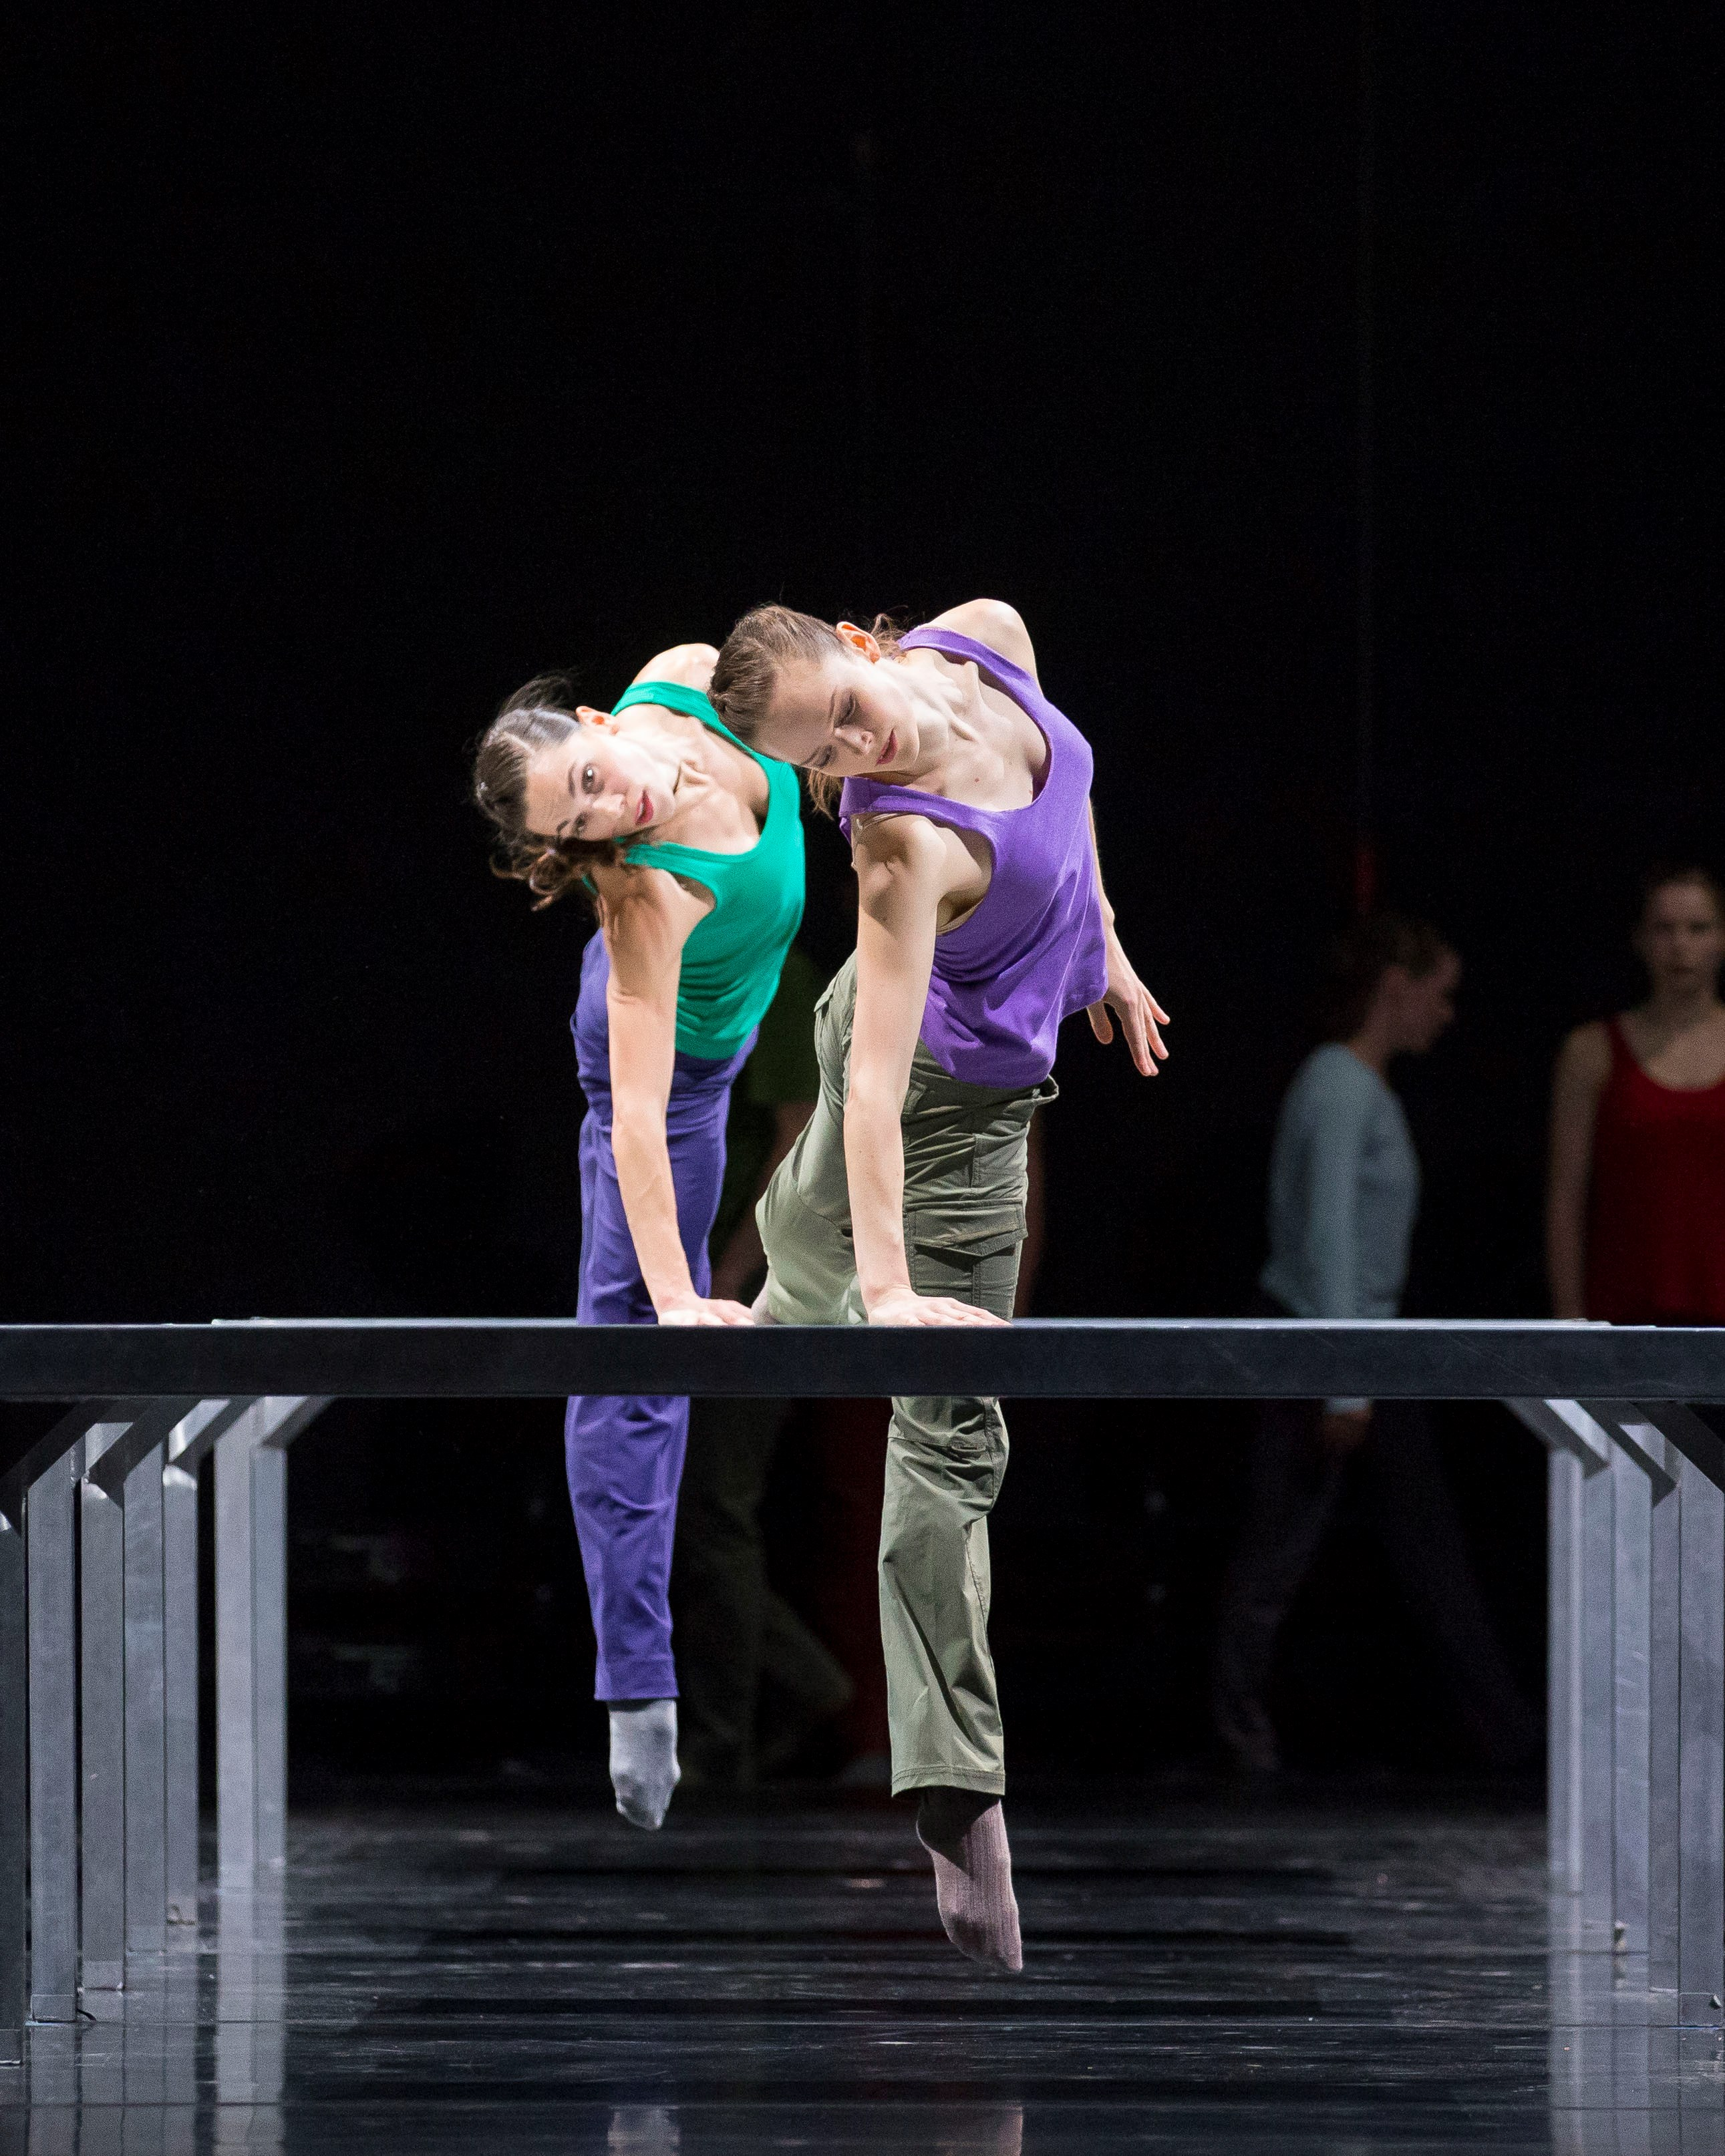 Alice Klock in William Forsythe's One Flat Thing, reproduced